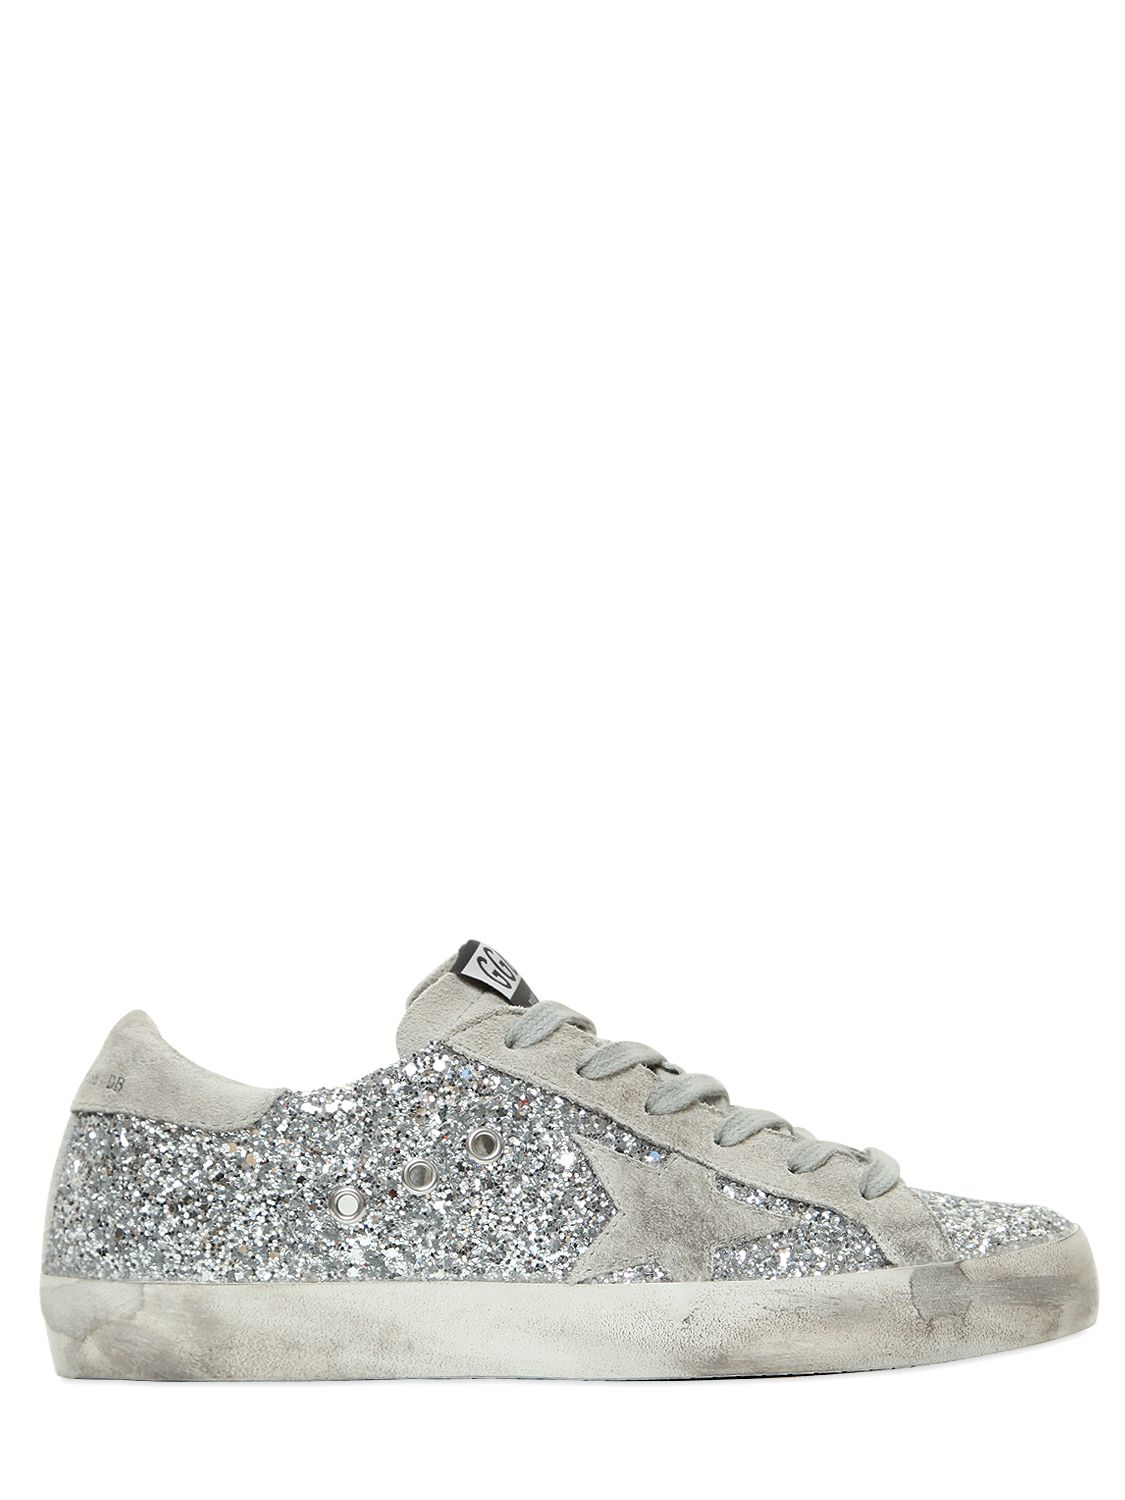 Superstar Distressed Glittered Leather And Suede Sneakers - Silver Golden Goose YQEqmzSY